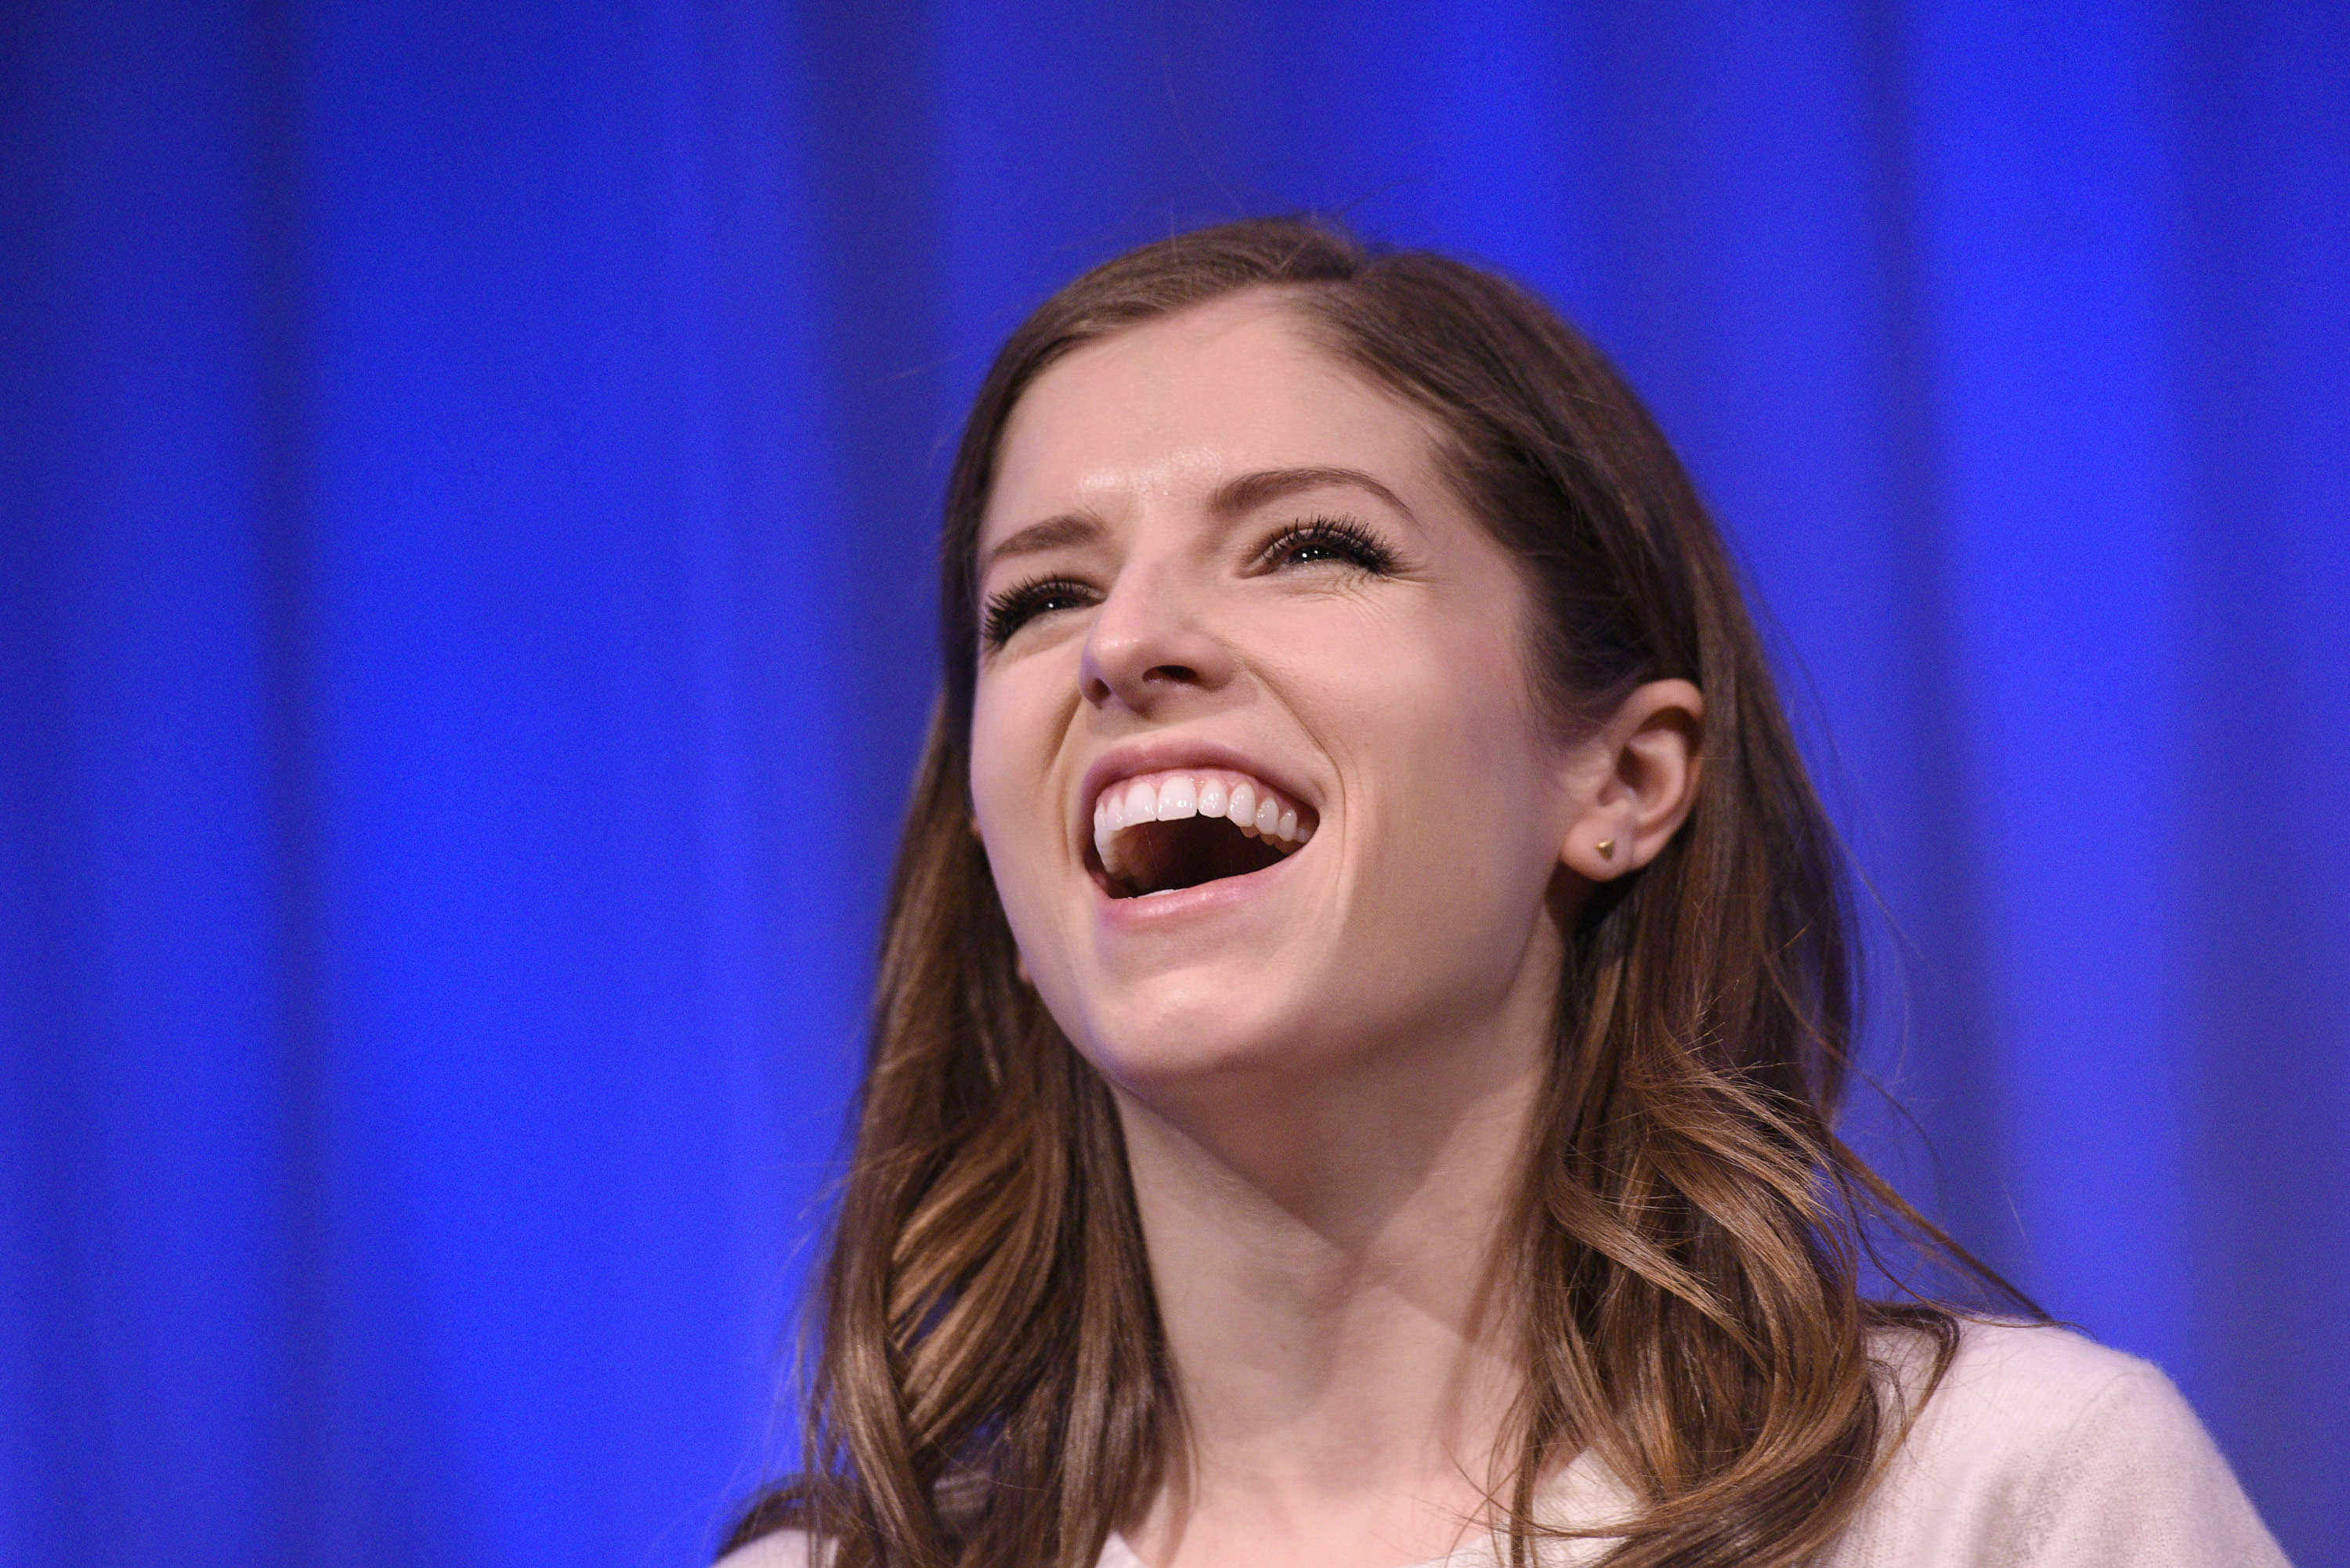 7 Anna Kendrick Singing Clips For Any Mood Because Her Voice Can Lift Your Spirits